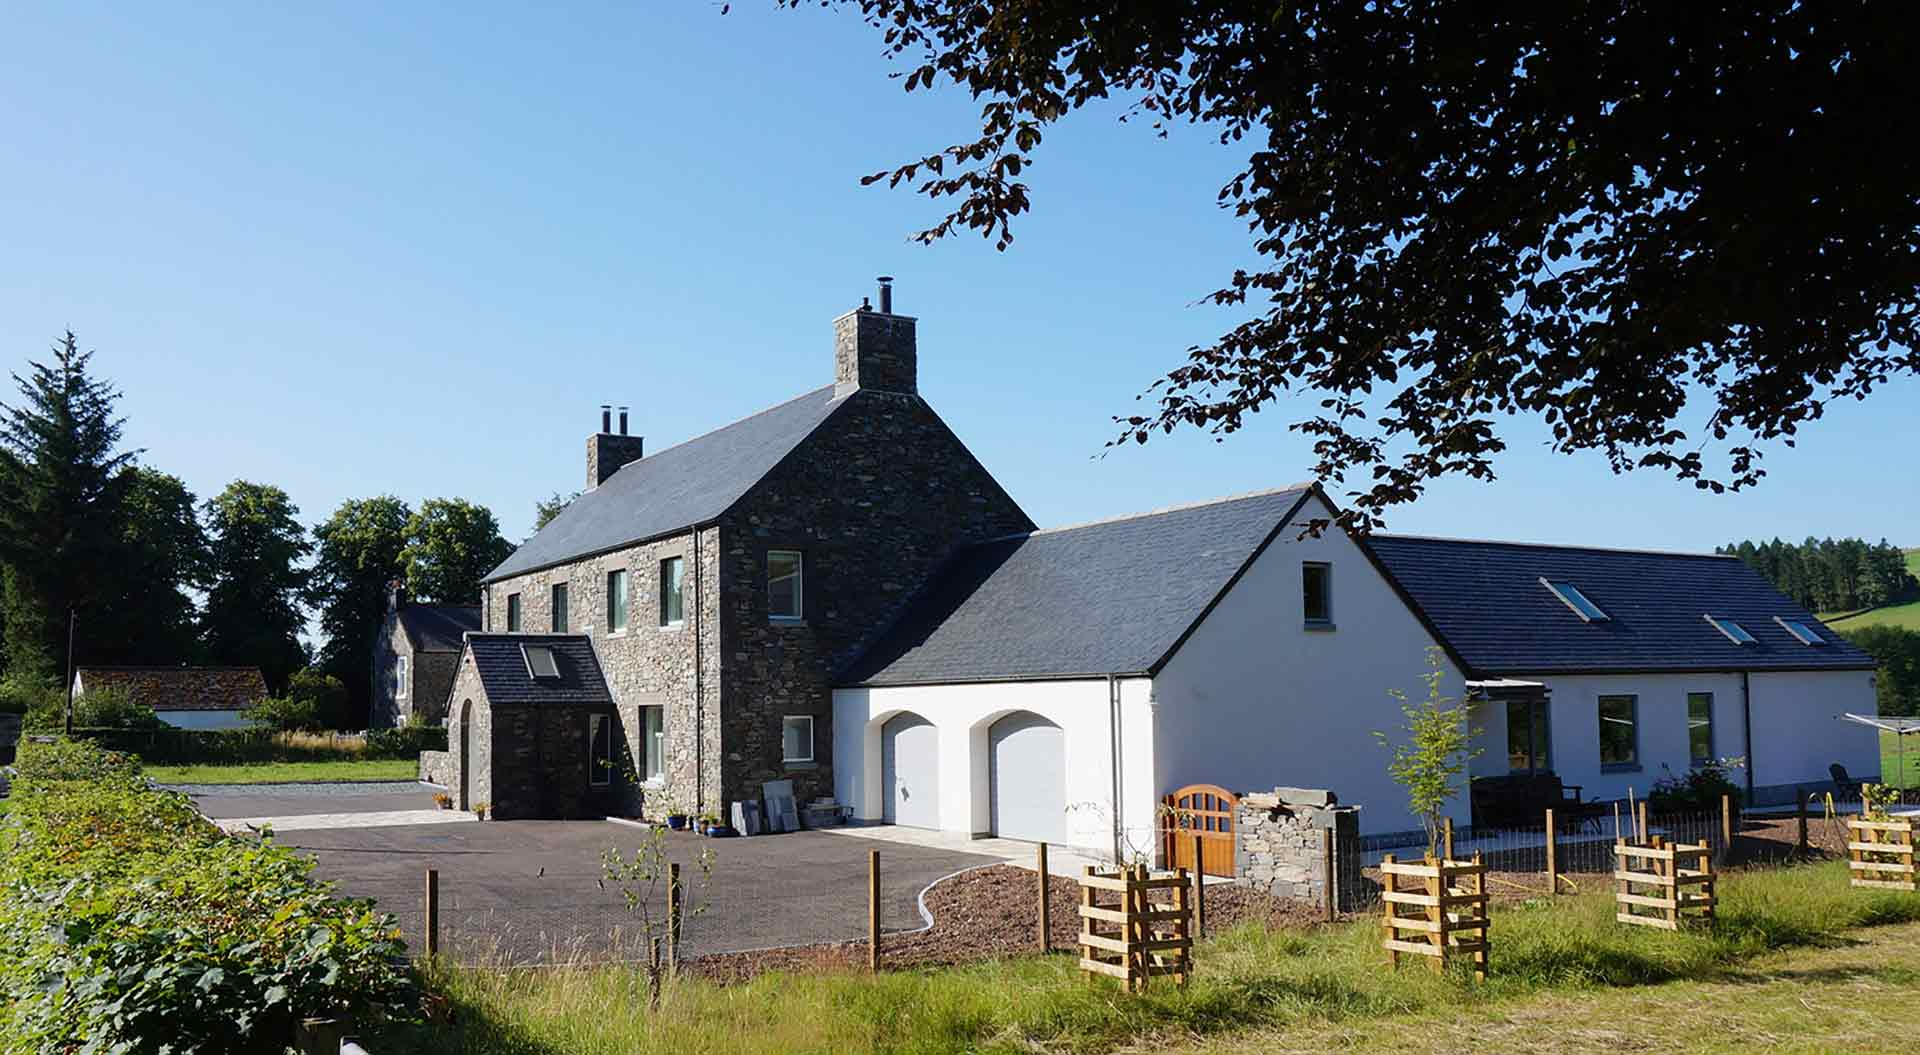 Modern house designs john murray architect scotland for Traditional house designs uk